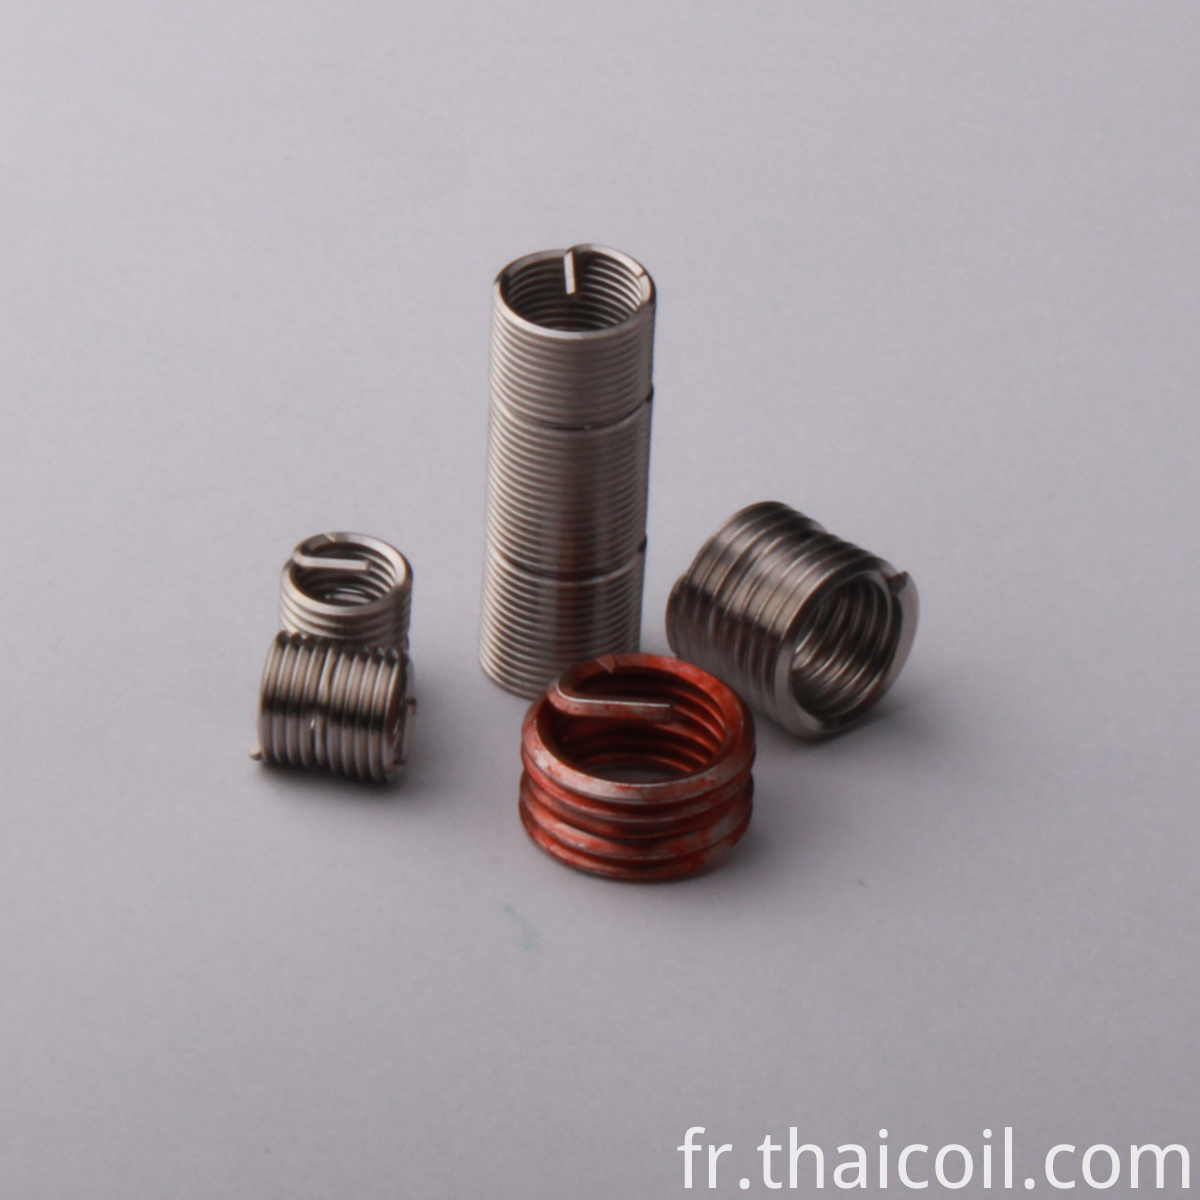 4-40 Thread Repair Inserts